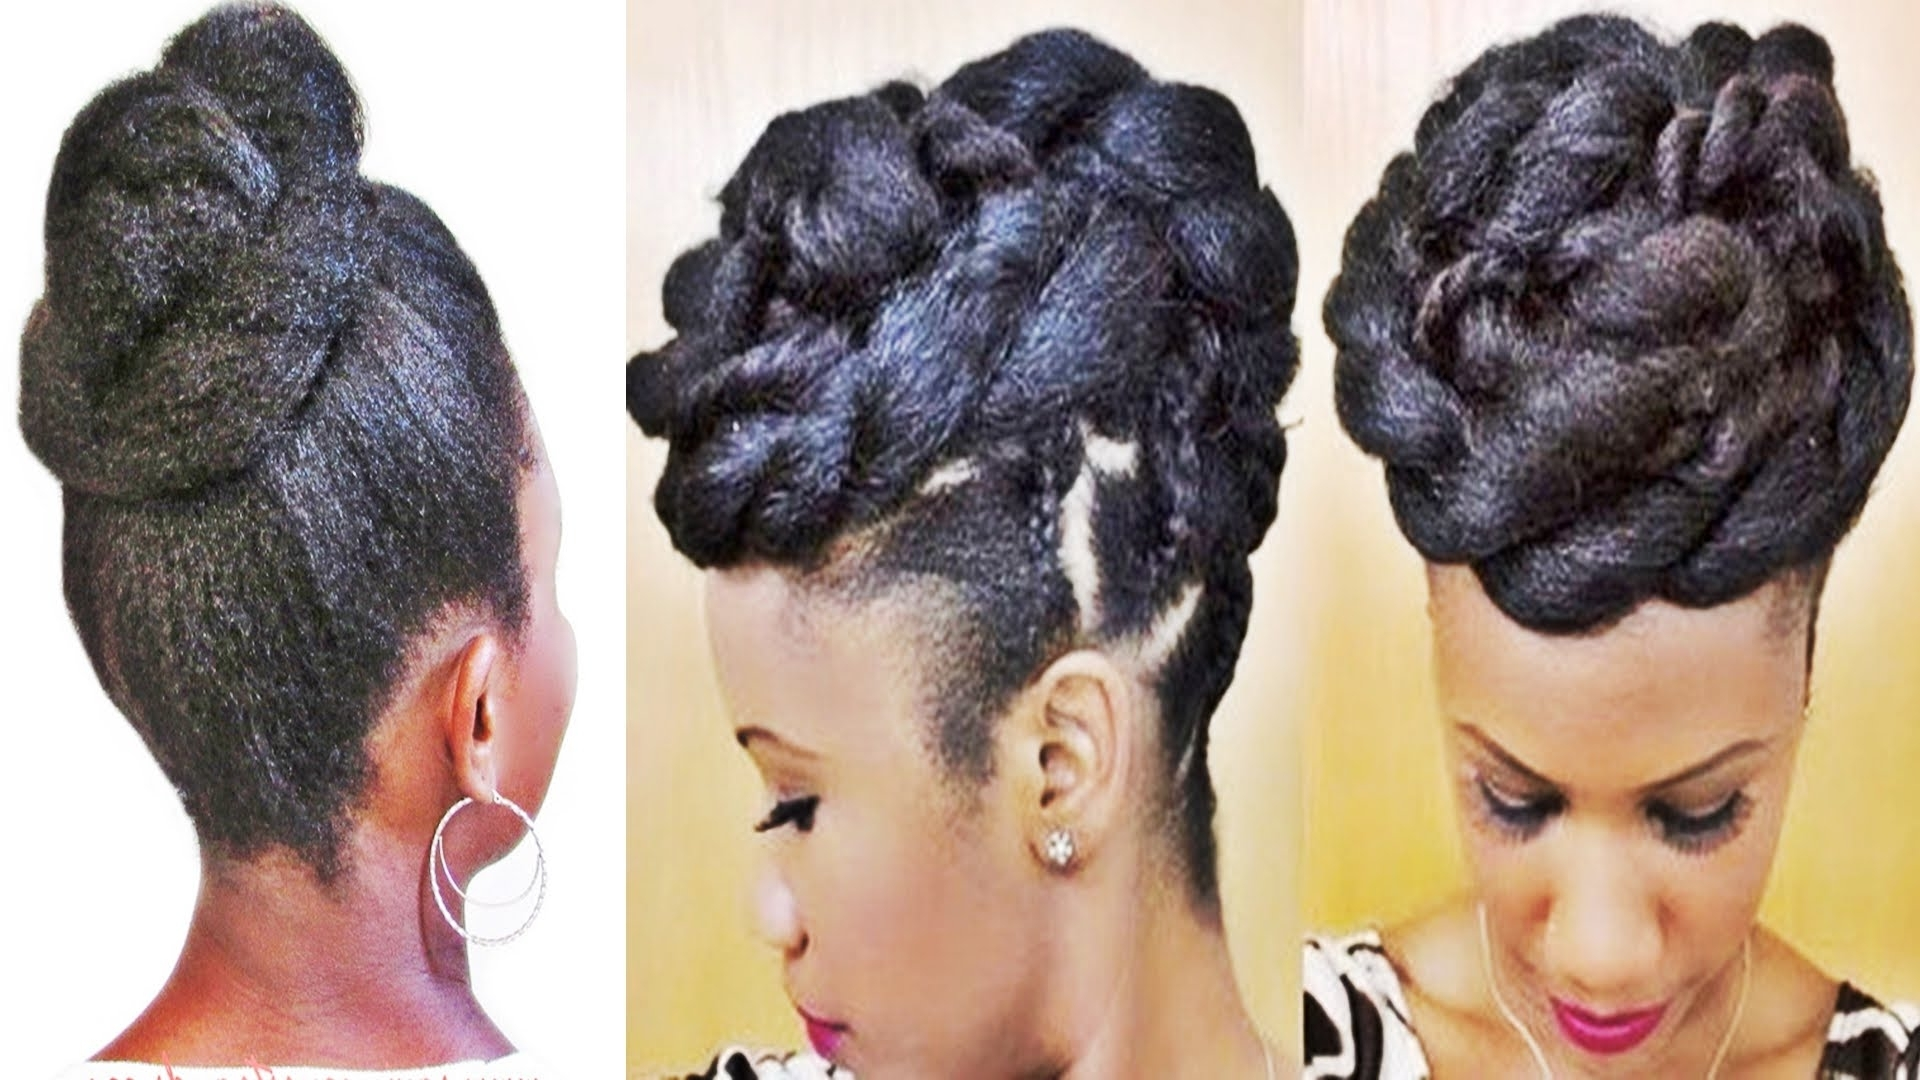 Braids And Twists Updo Hairstyle For Black Women – Youtube Inside Twist Updo Hairstyles (View 3 of 15)